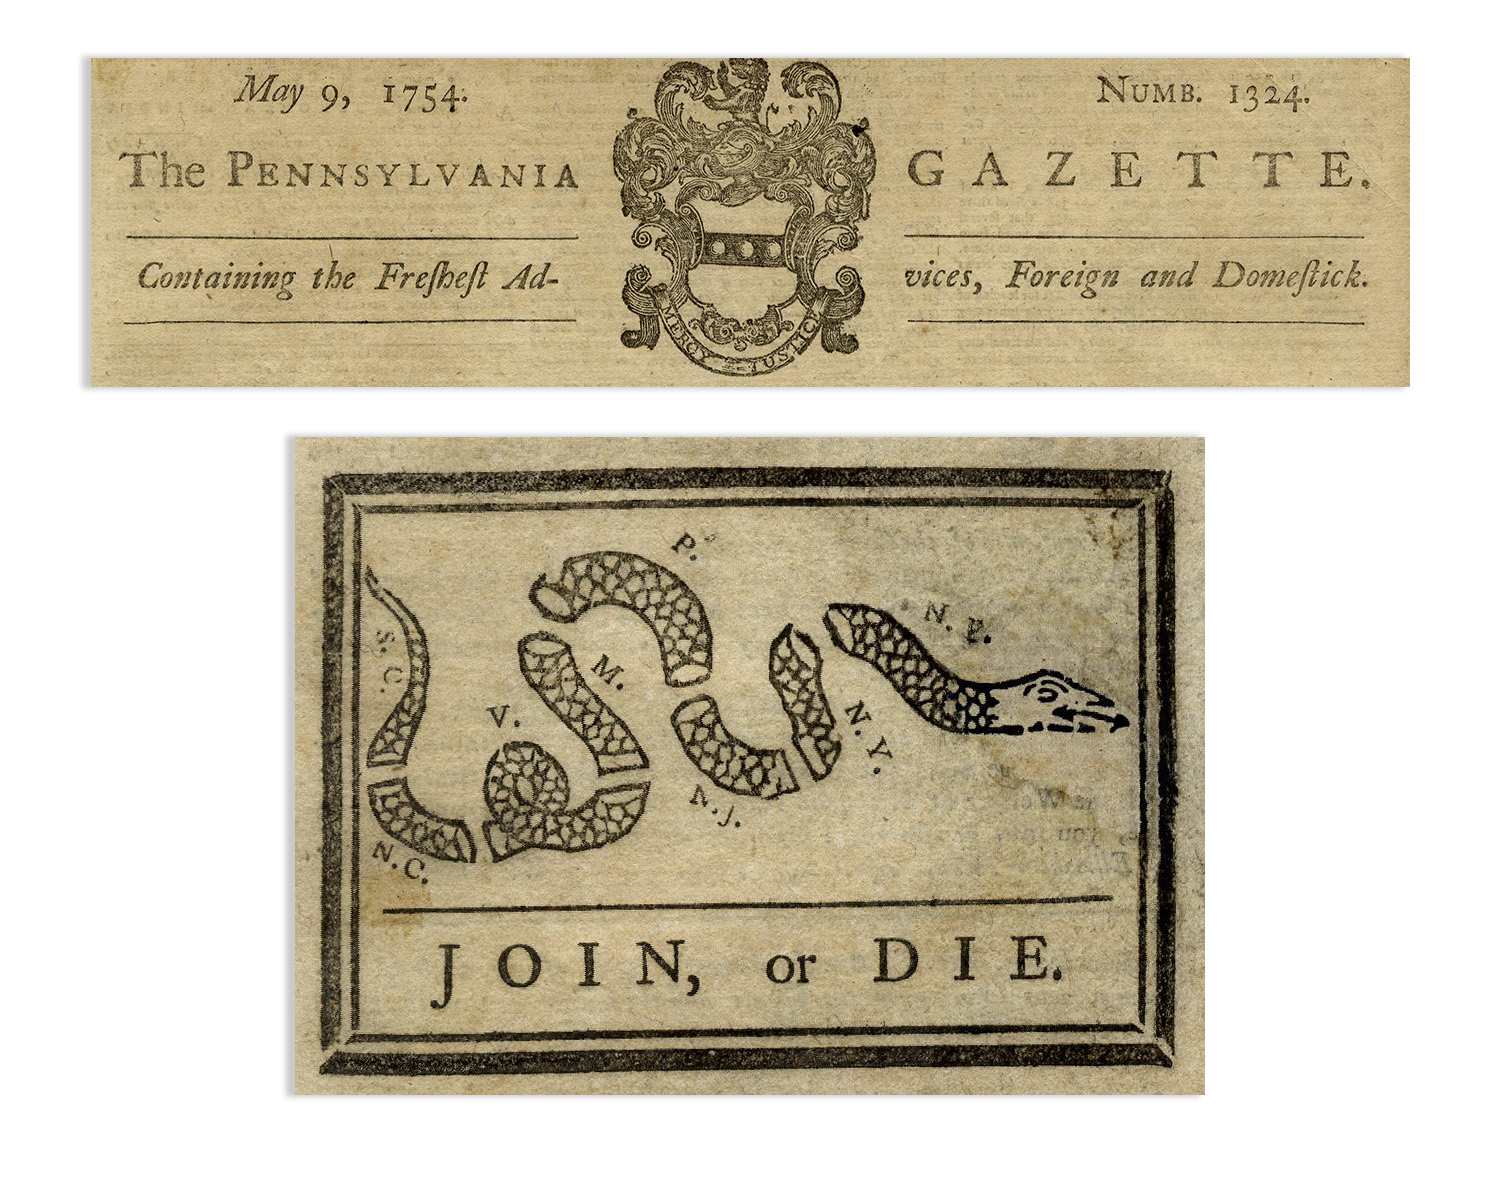 Buy A Join Or Die Newspaper At Nate D Sanders Auctions July 26th